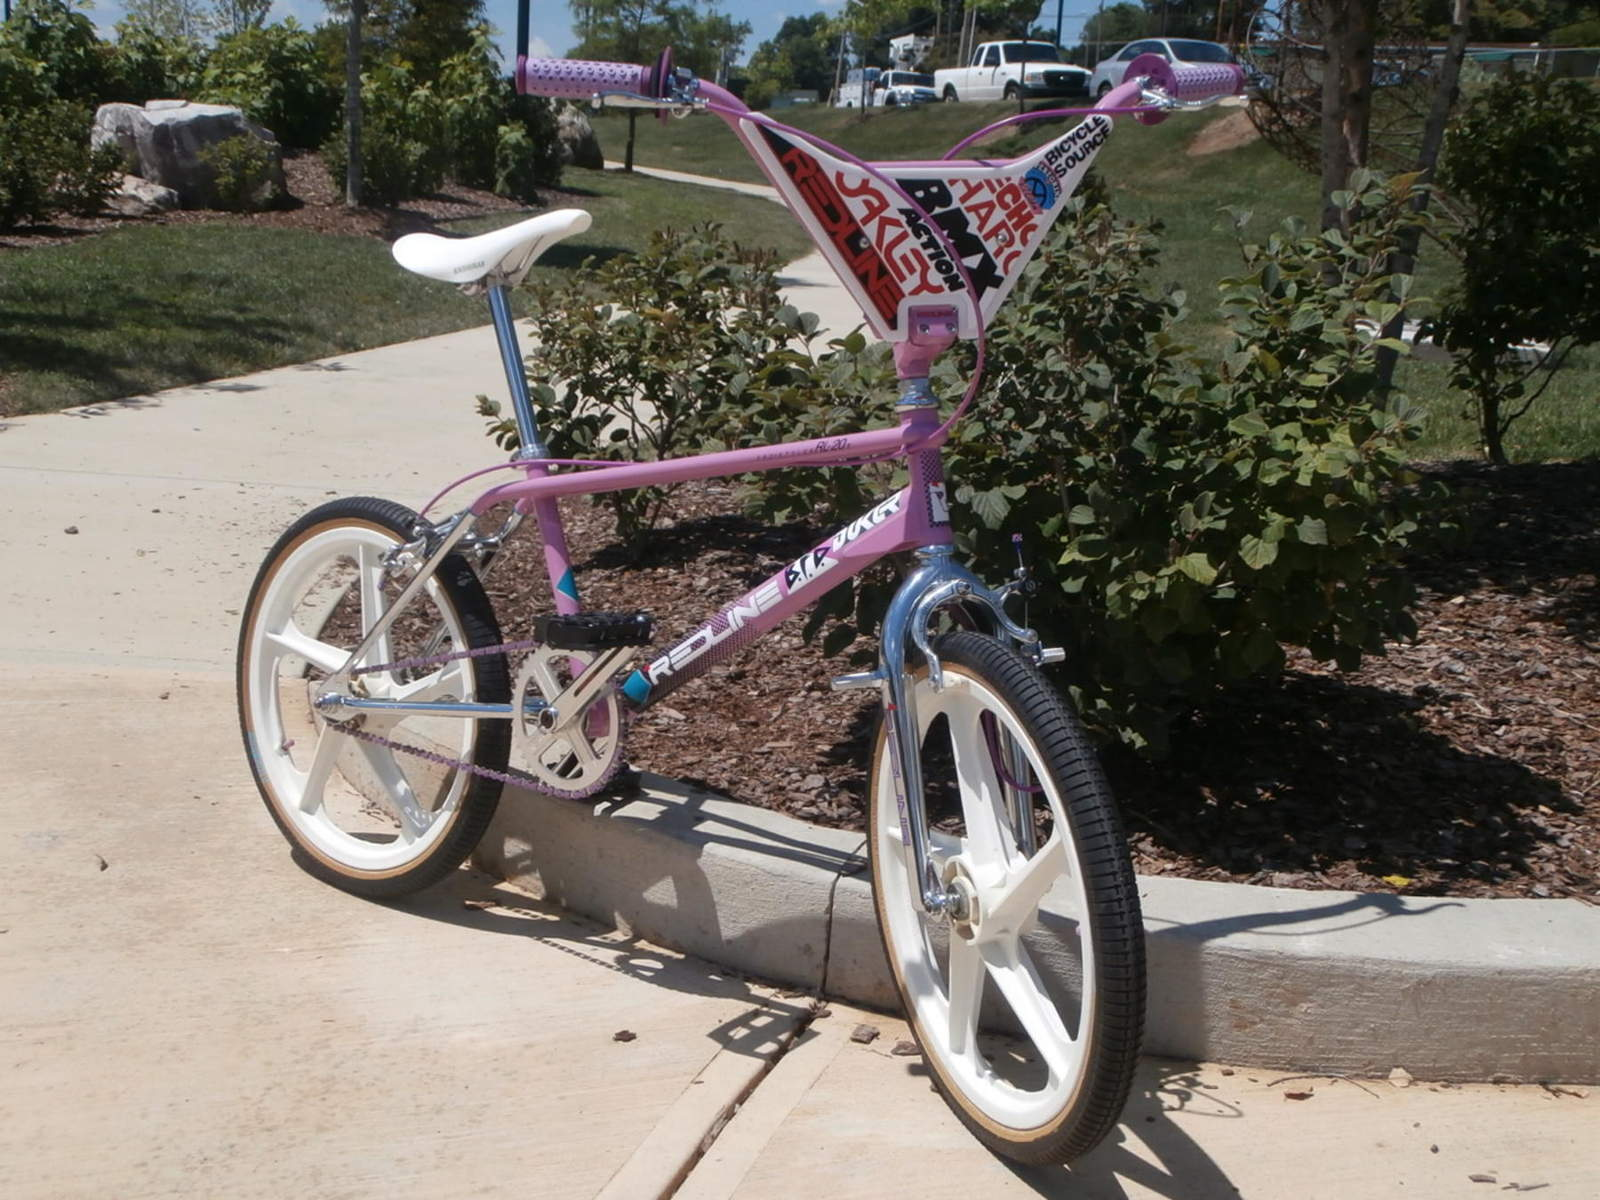 http://uploads.bmxmuseum.com/user-images/44332/p101057355bfb2a55a_blowup5d0ef1440b.jpg